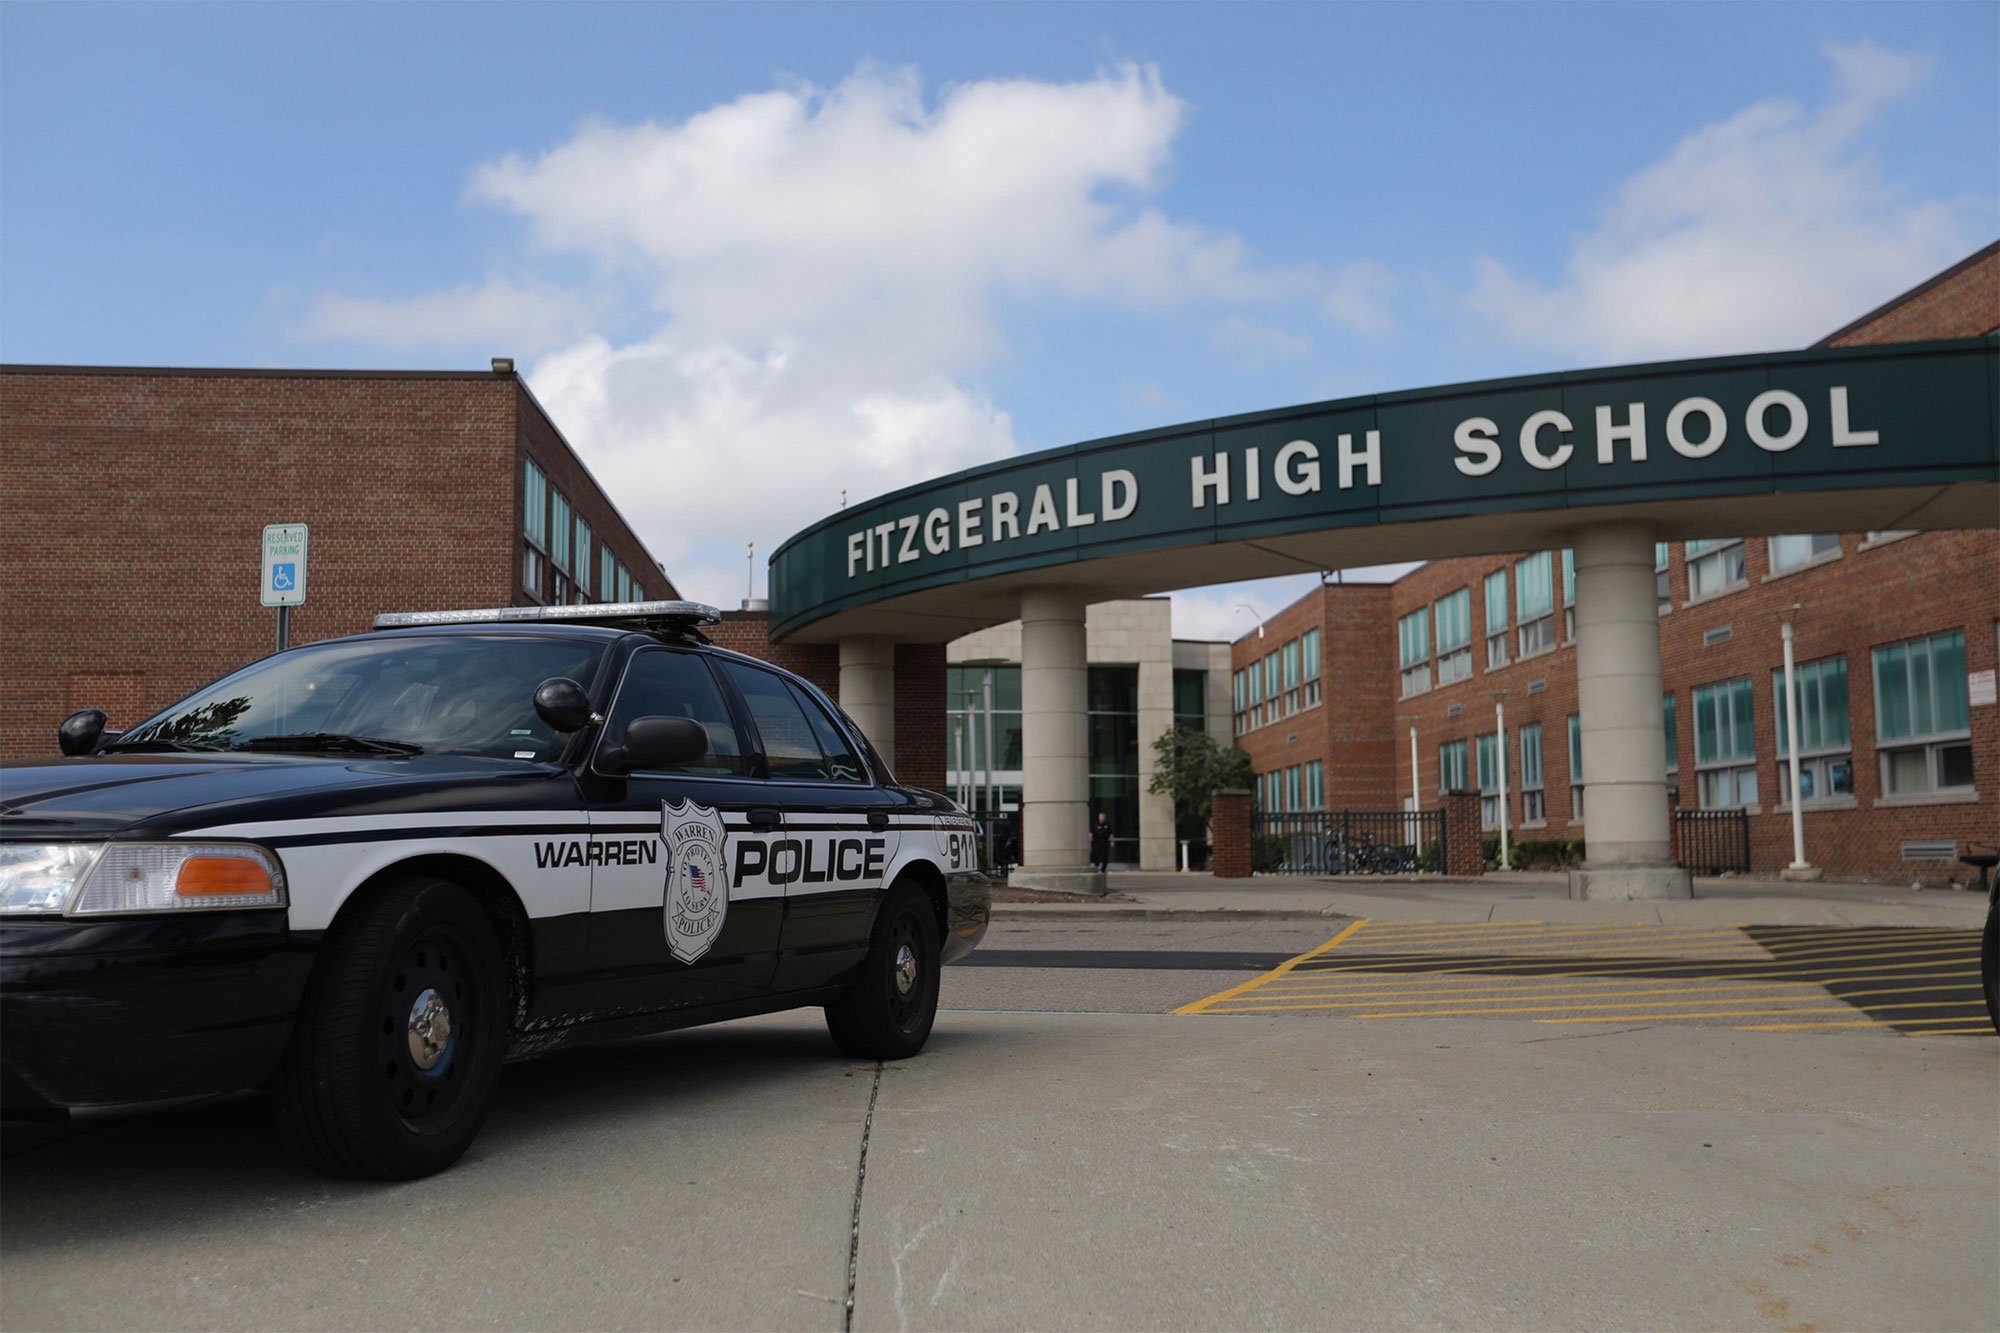 Straight-A Student Was Fatally Stabbed in Mich. Classroom, Allegedly in Dispute Over a Boy